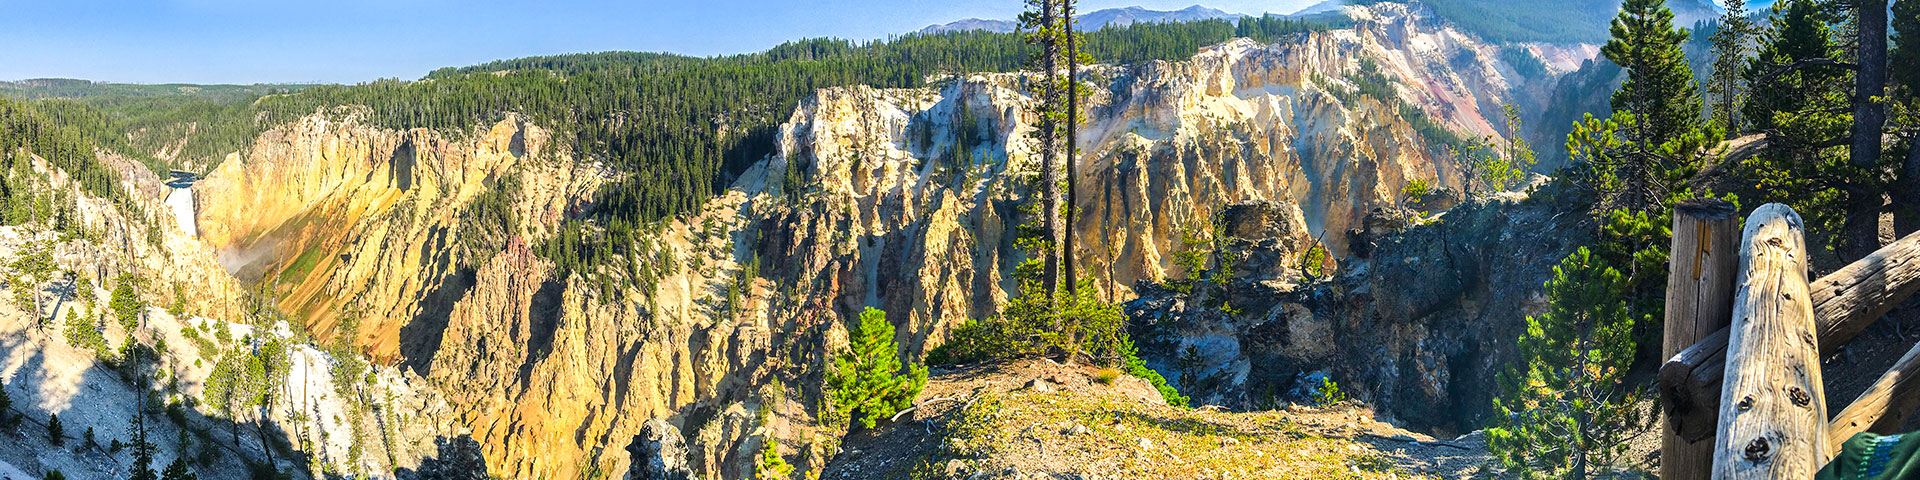 Scenery from the South Rim Hike in Yellowstone National Park